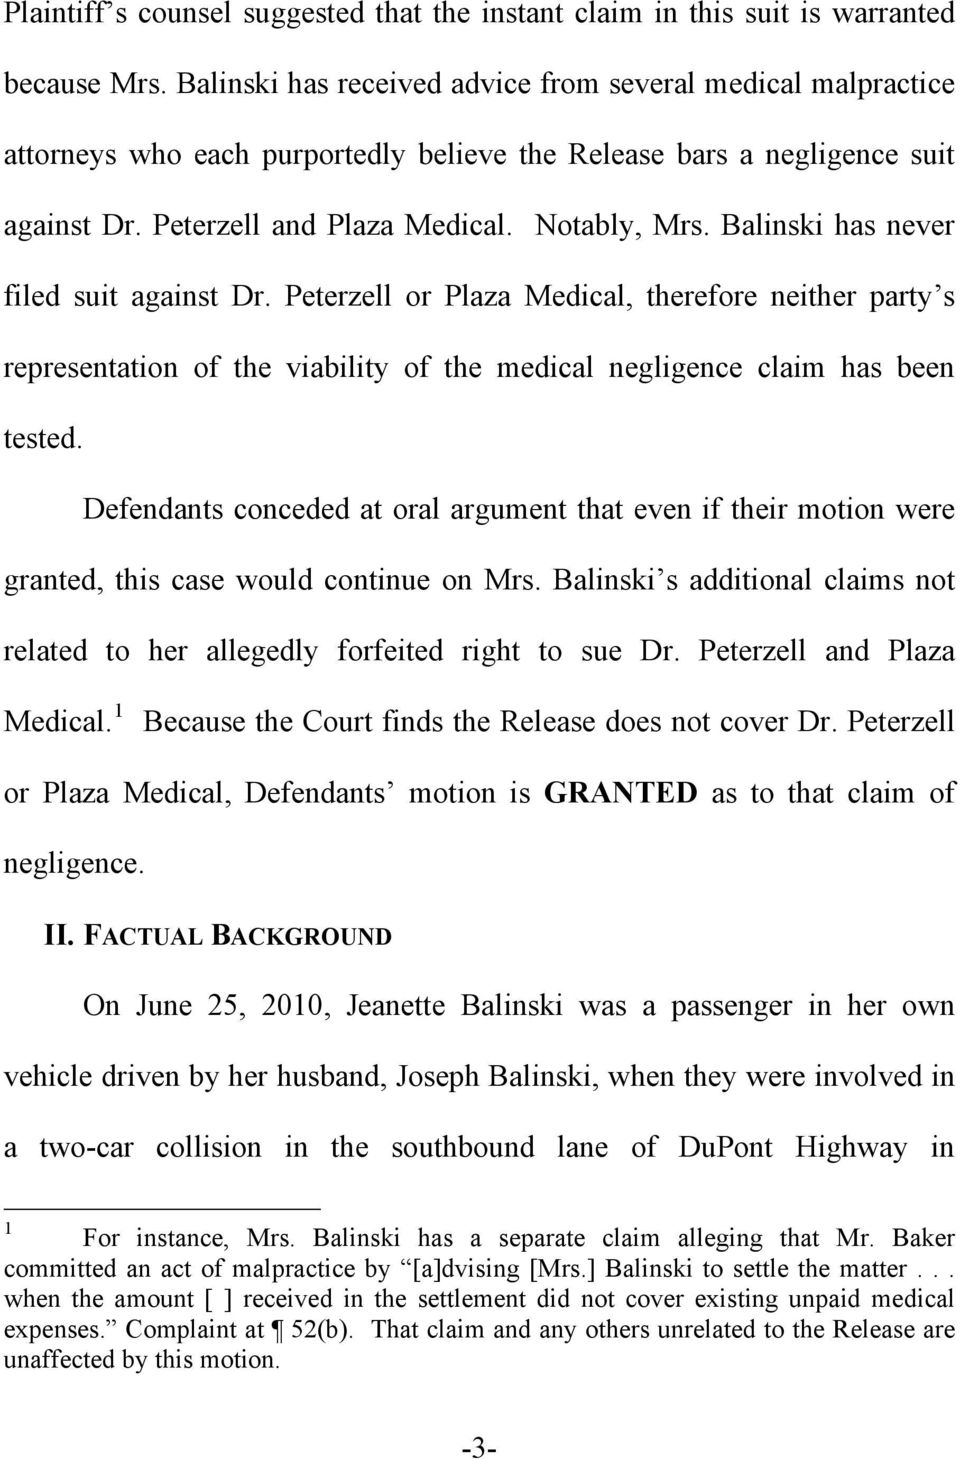 Balinski has never filed suit against Dr. Peterzell or Plaza Medical, therefore neither party s representation of the viability of the medical negligence claim has been tested.